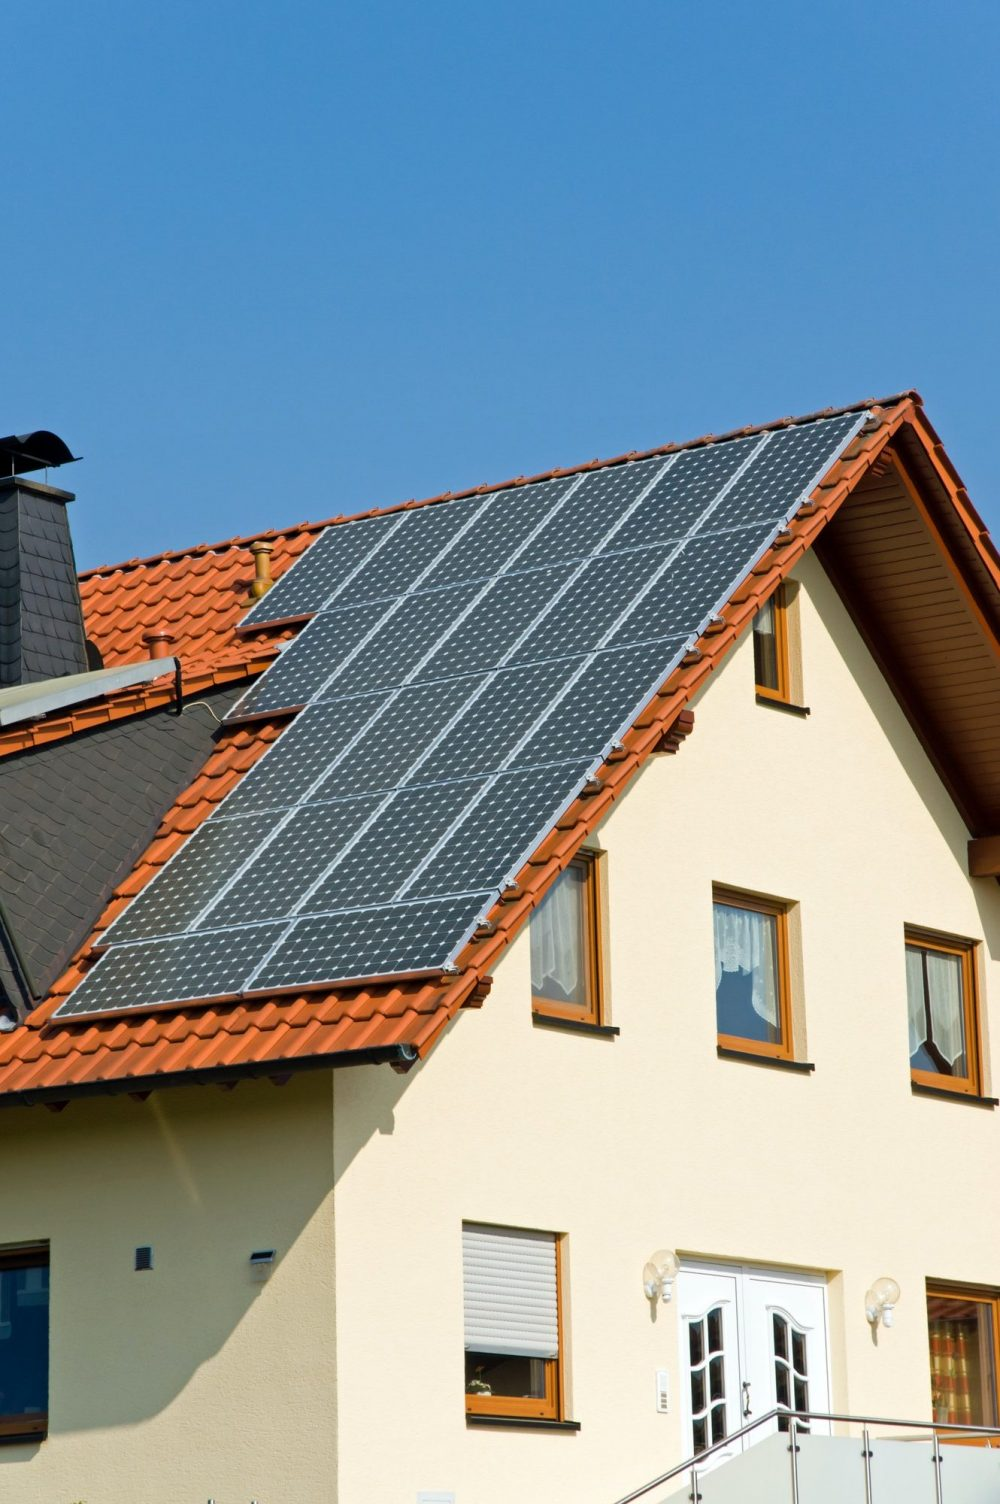 roof-with-solar-panels-in-germany-e1617069647324.jpg